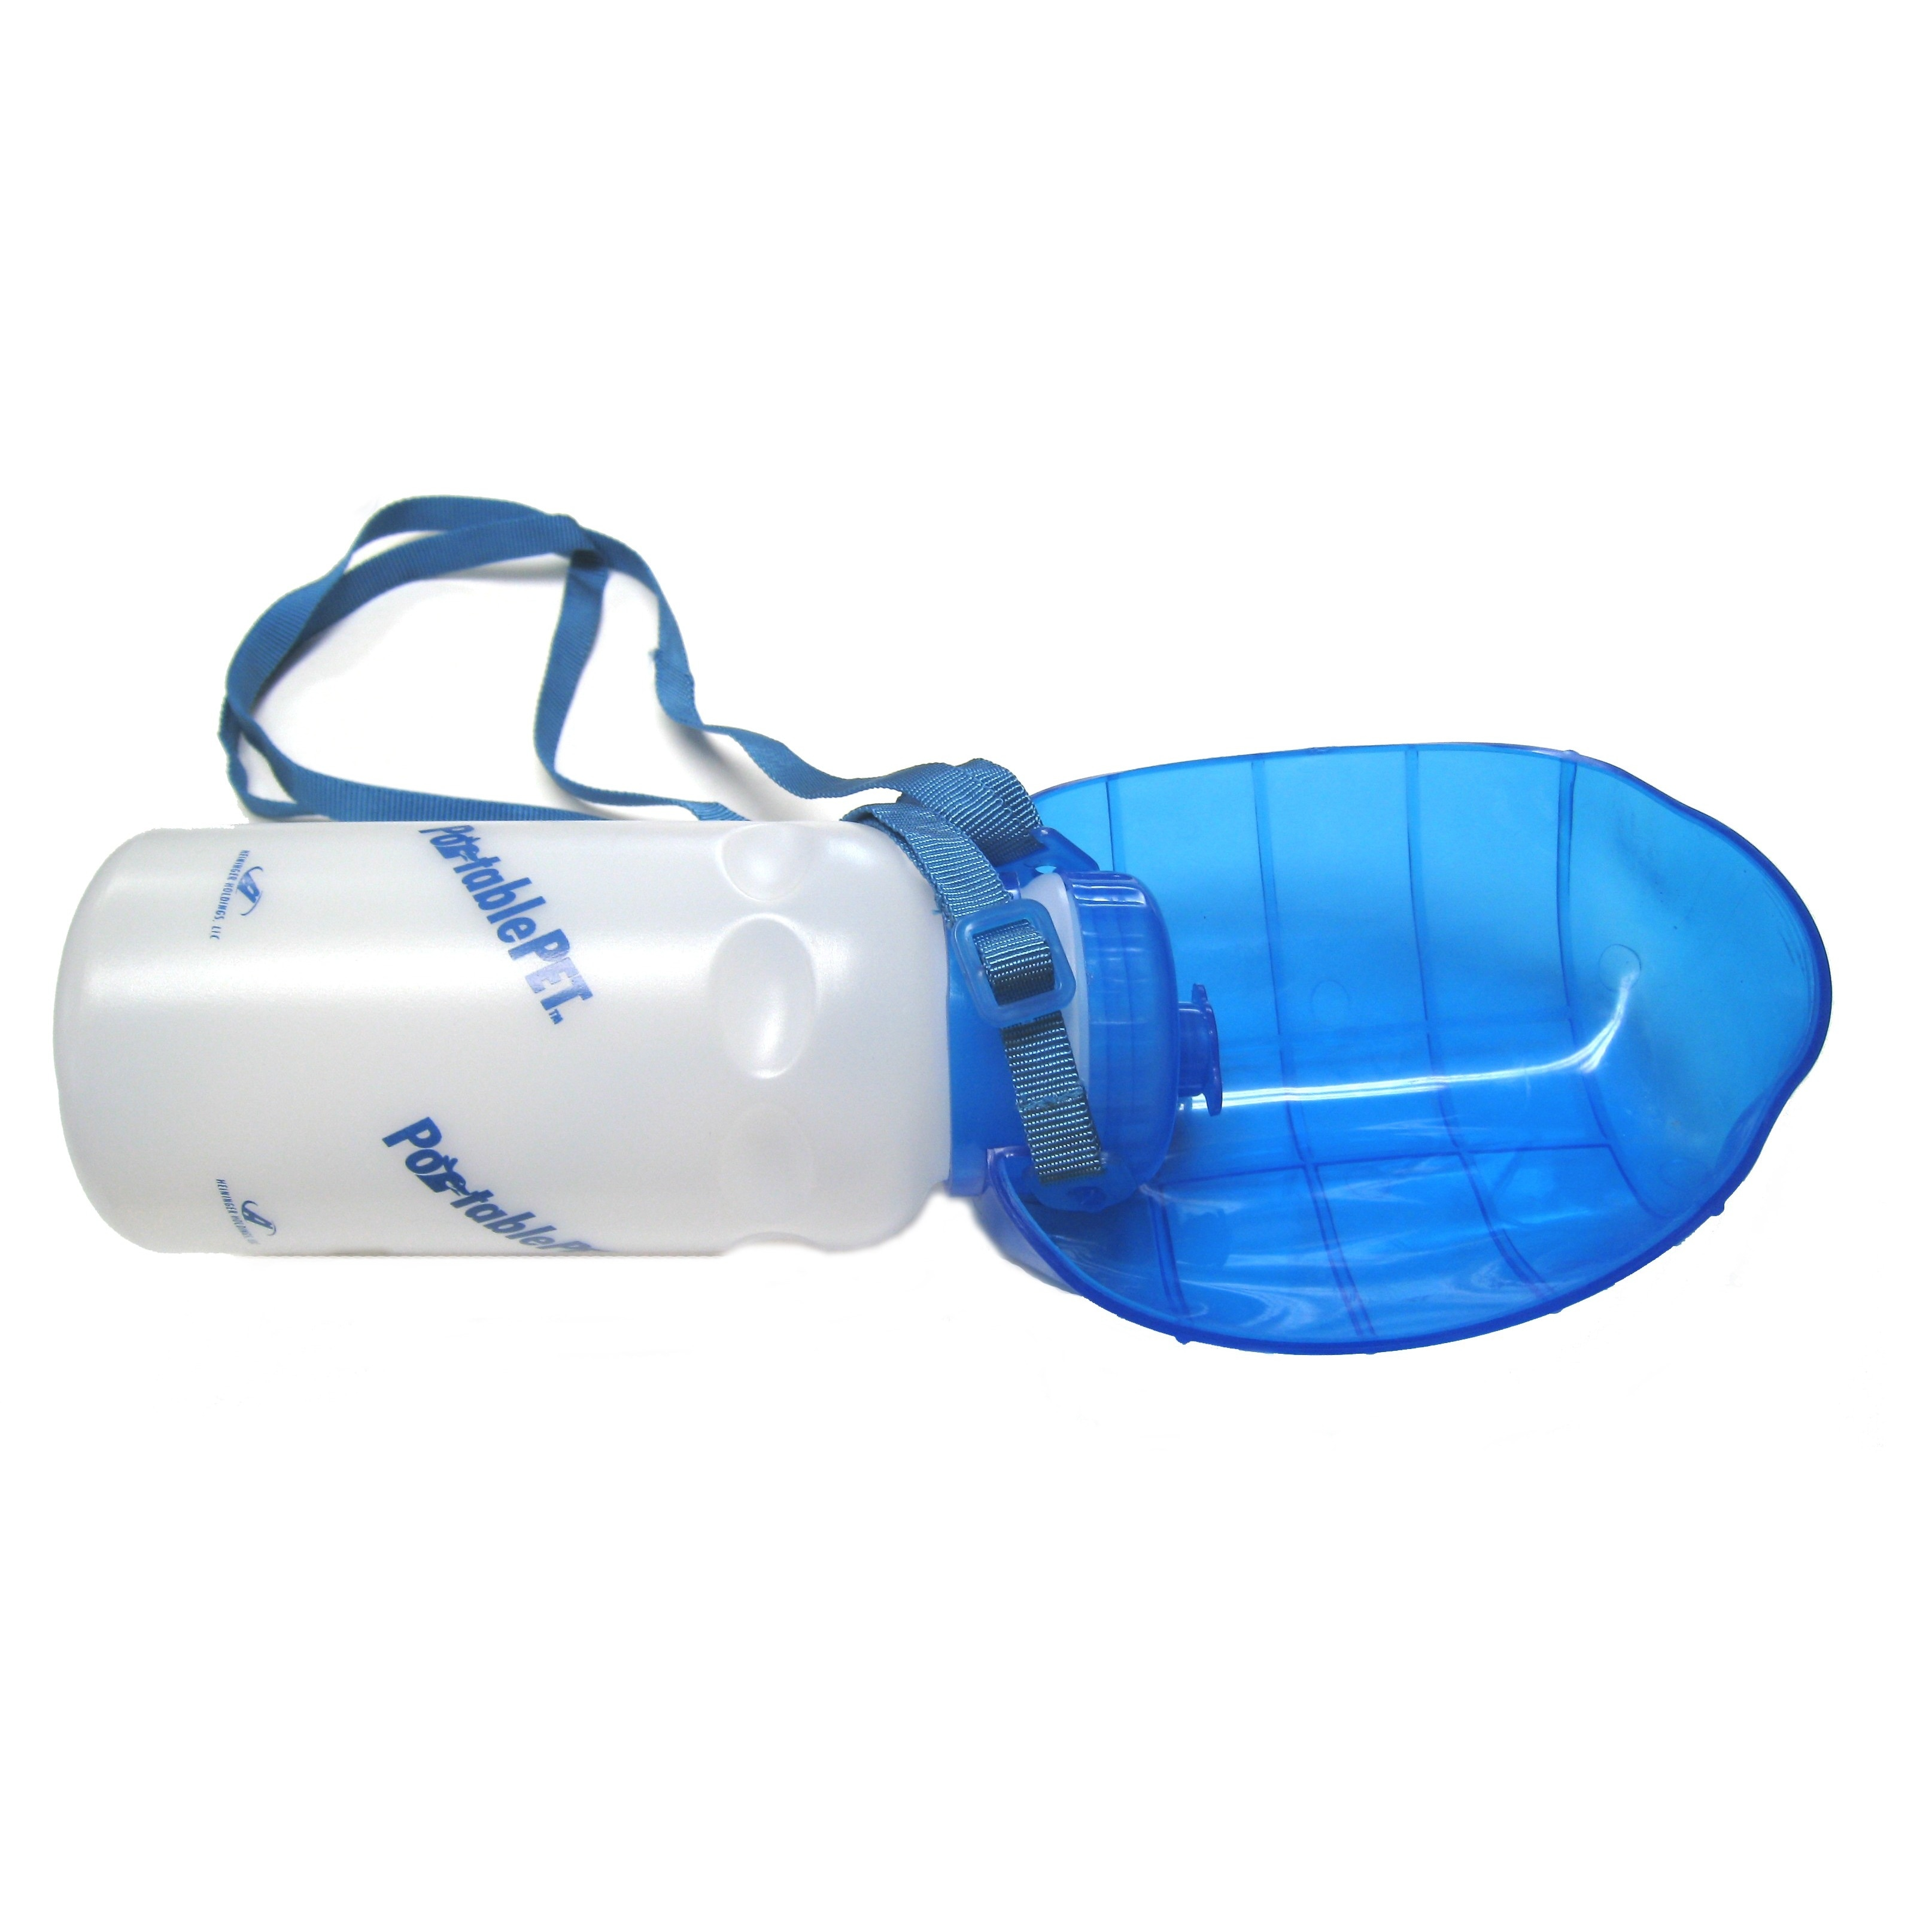 Shop Portabottle 20 Ounce Portable Pet Water Bottle 2 Pack   Free Shipping  On Orders Over $45   Overstock.com   9130085